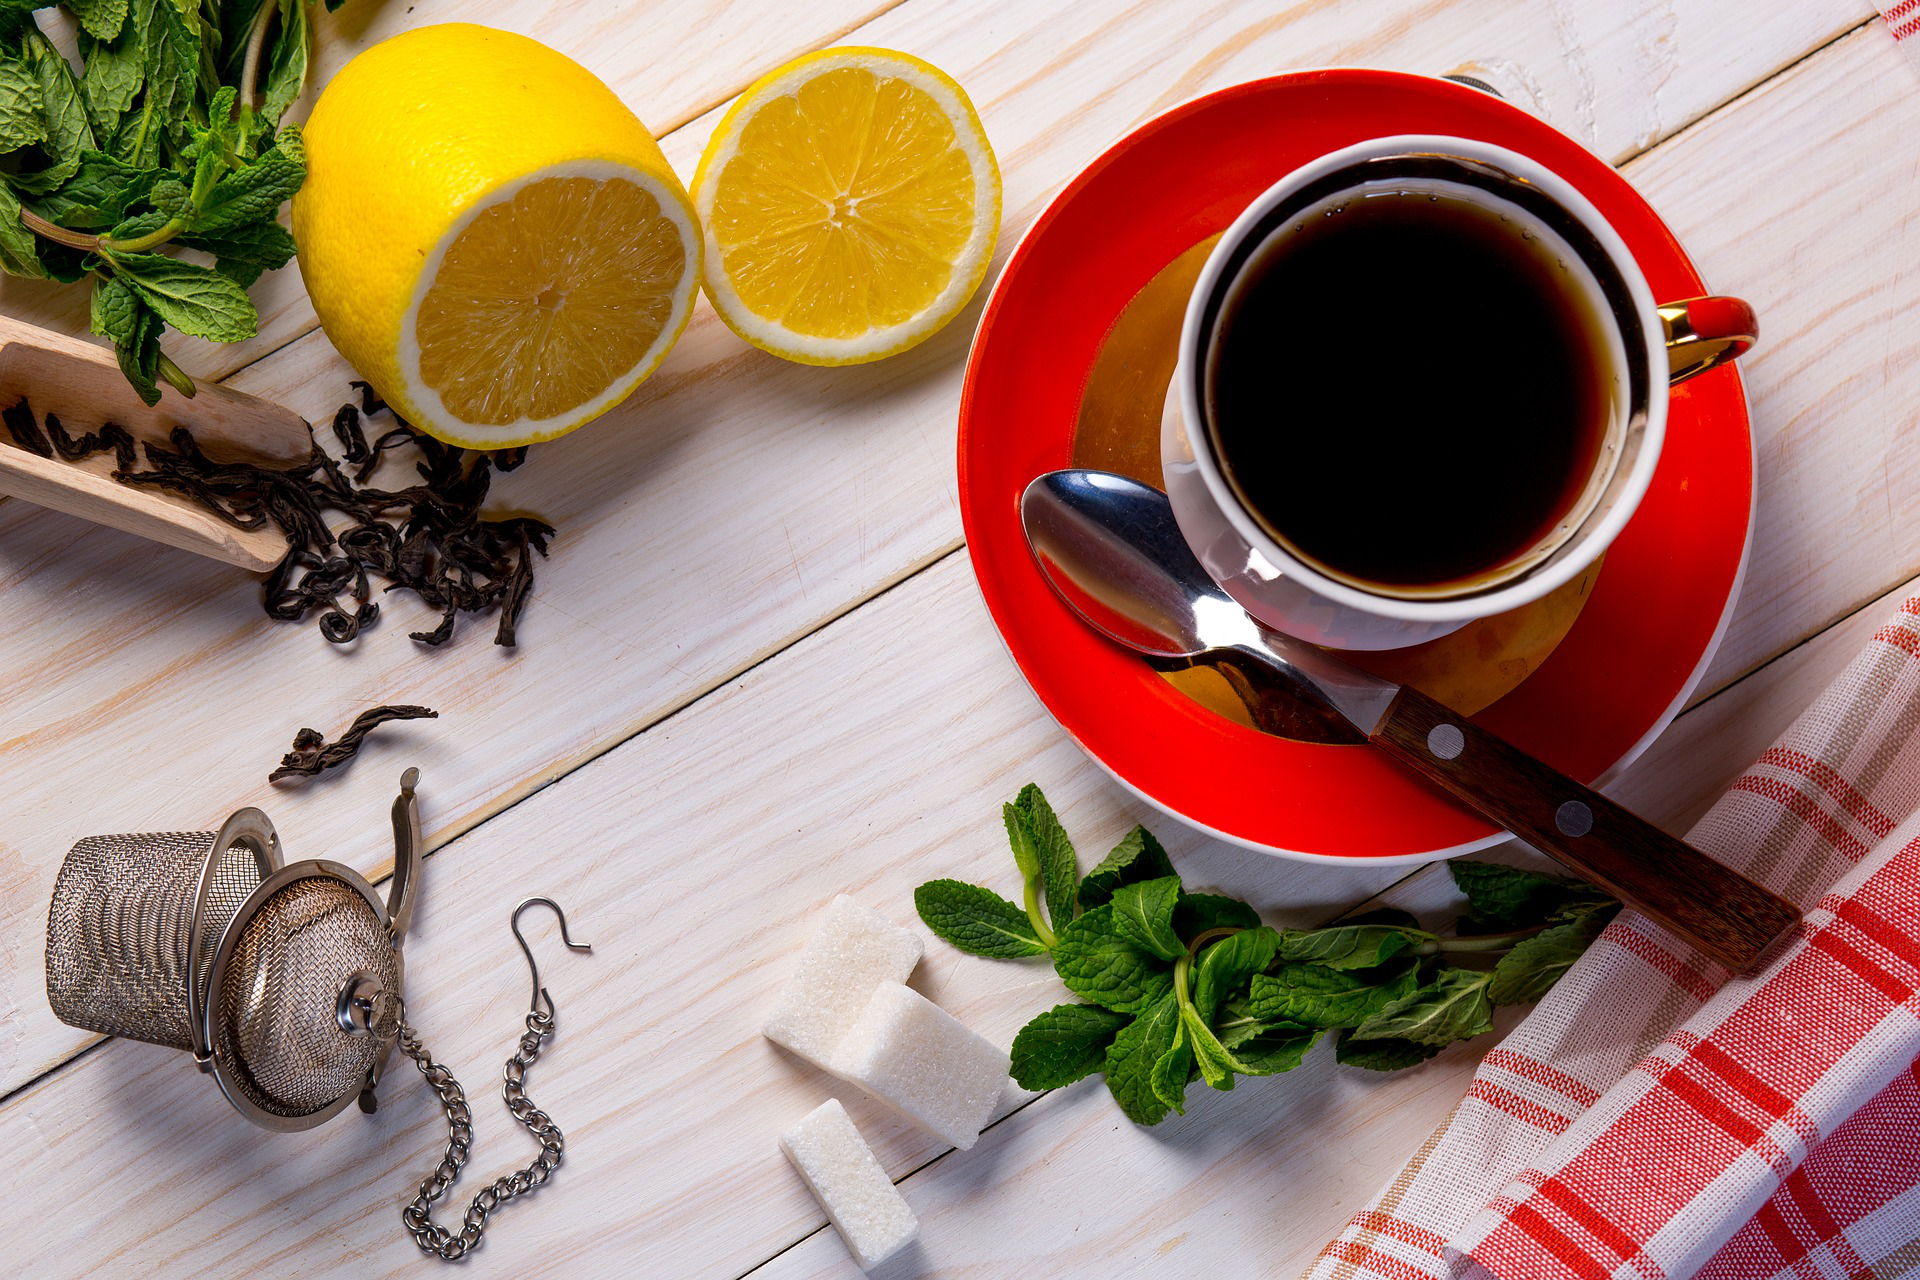 5 Easy Home Remedies for Coughs and Colds